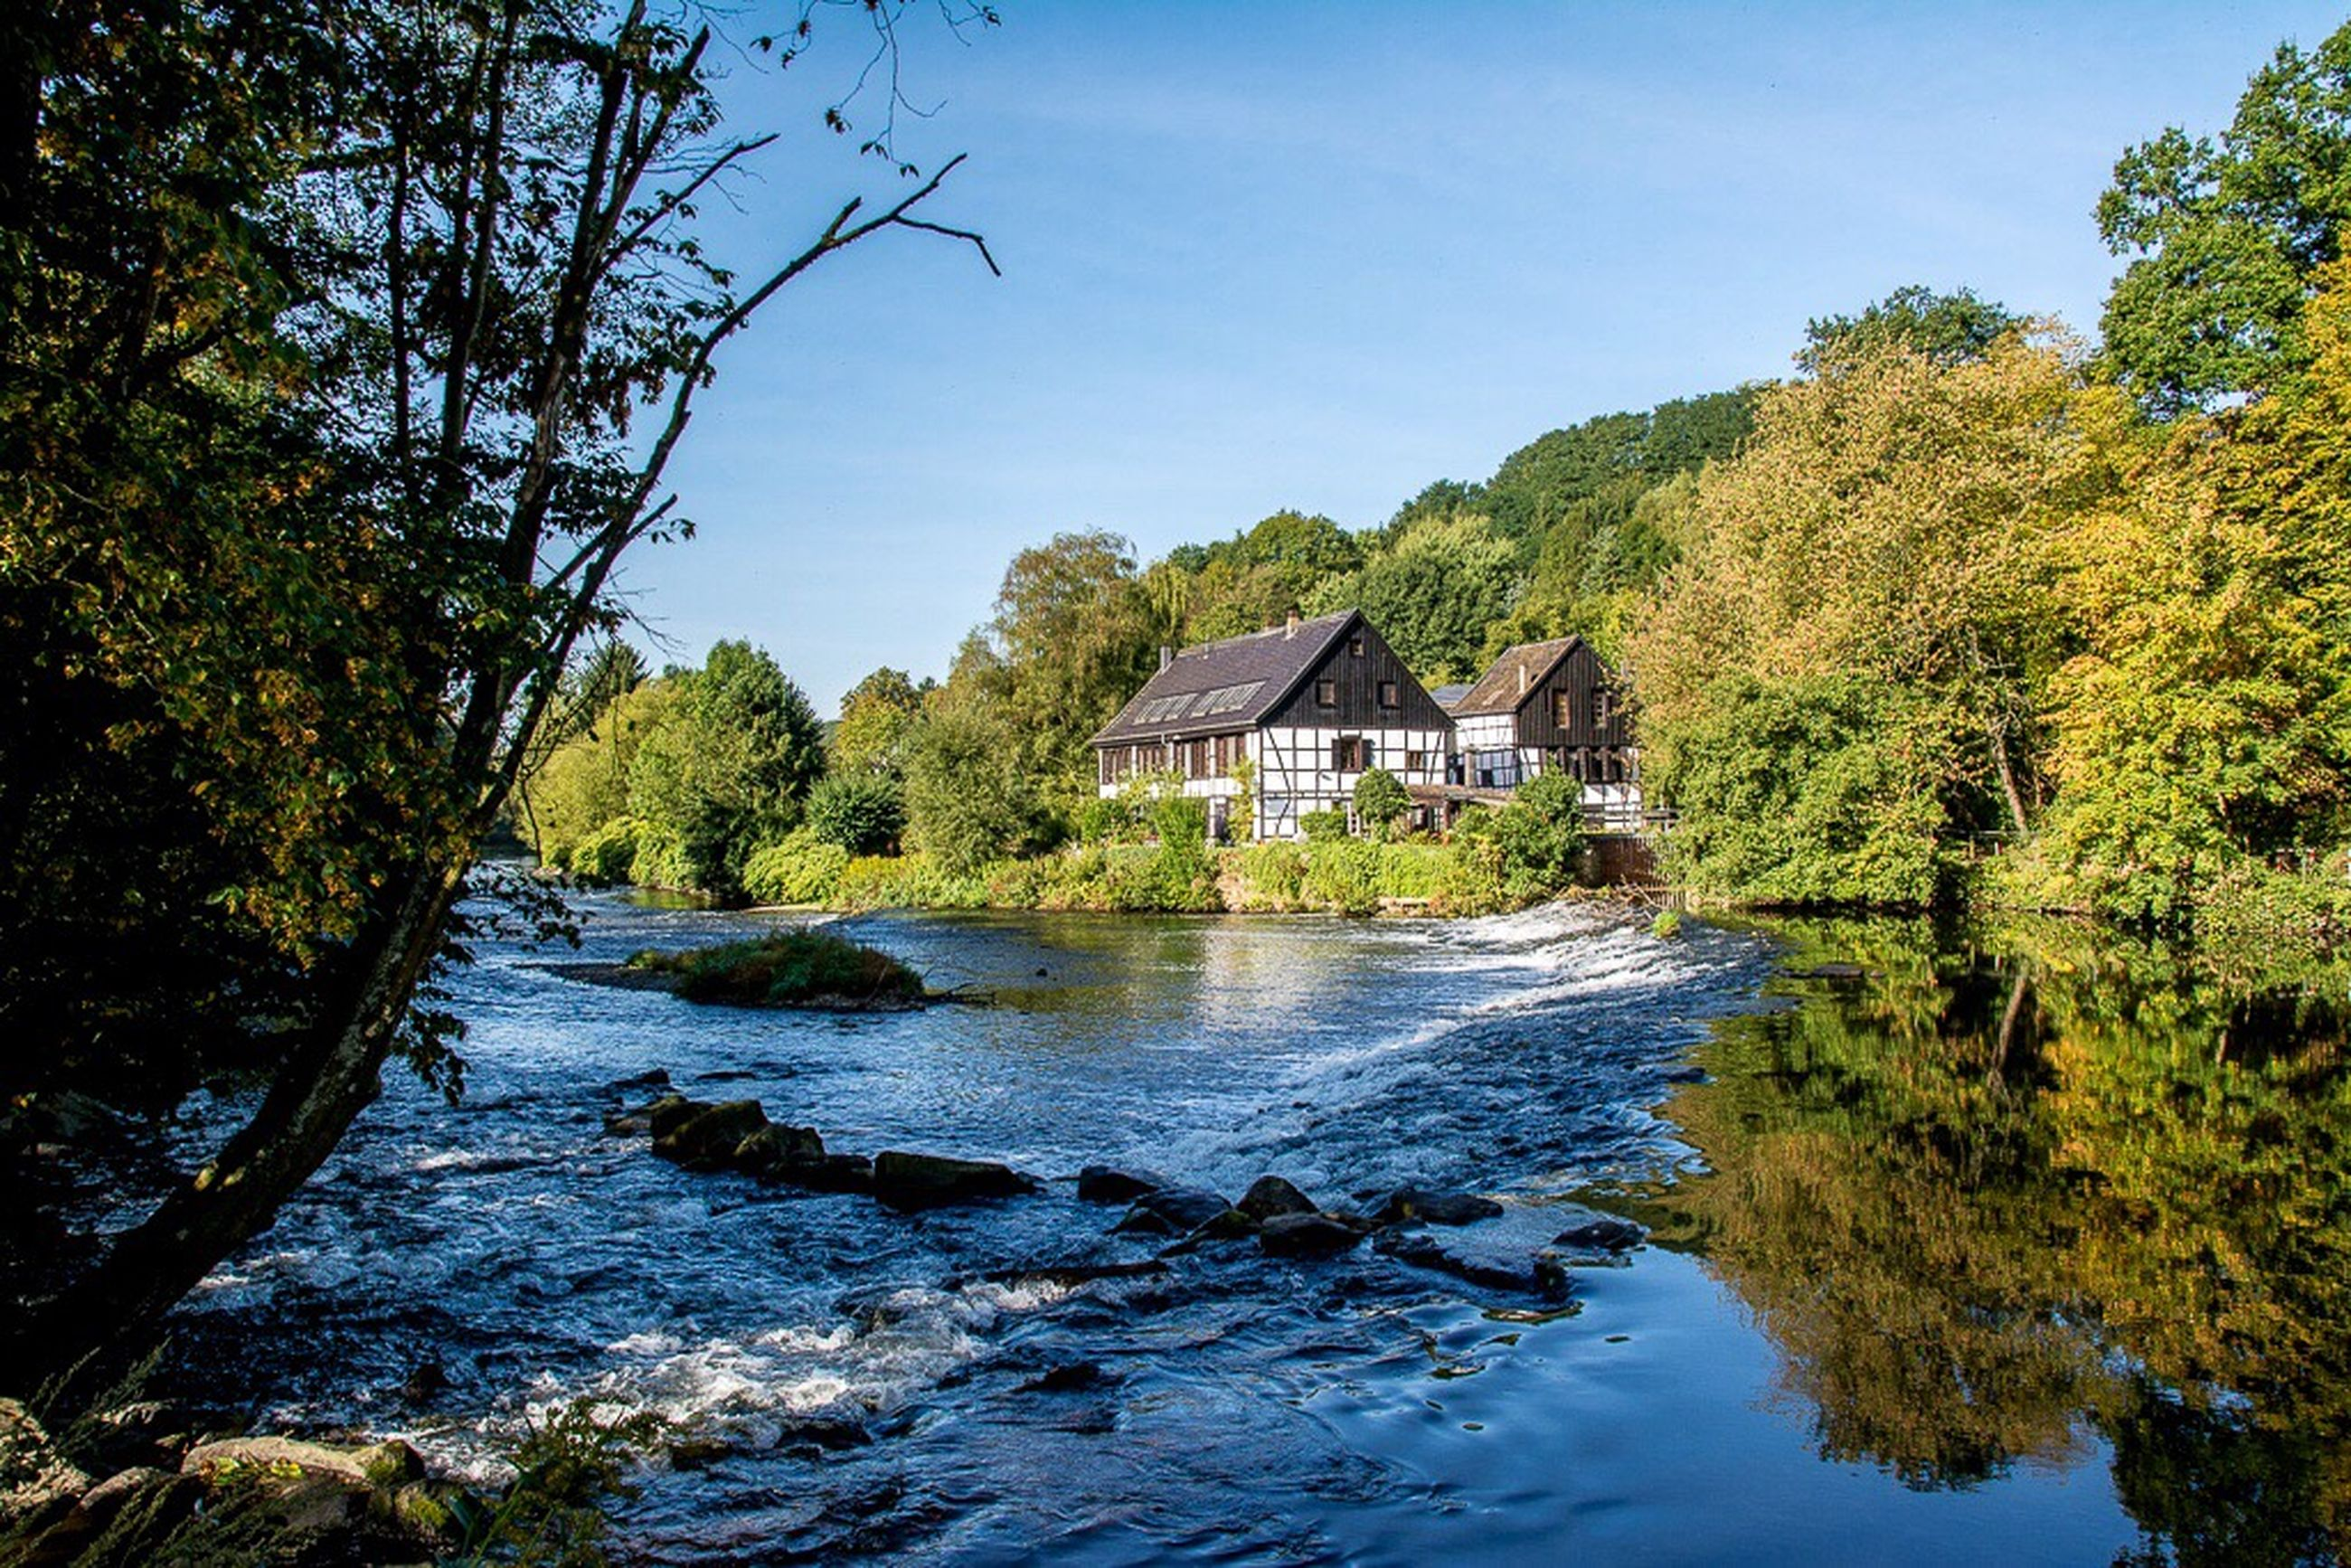 water, tree, house, architecture, built structure, river, scenics, tranquil scene, building exterior, tranquility, stream, flowing, flowing water, non-urban scene, mountain, nature, remote, beauty in nature, blue, day, riverbank, outdoors, tourism, narrow, sky, waterfront, green color